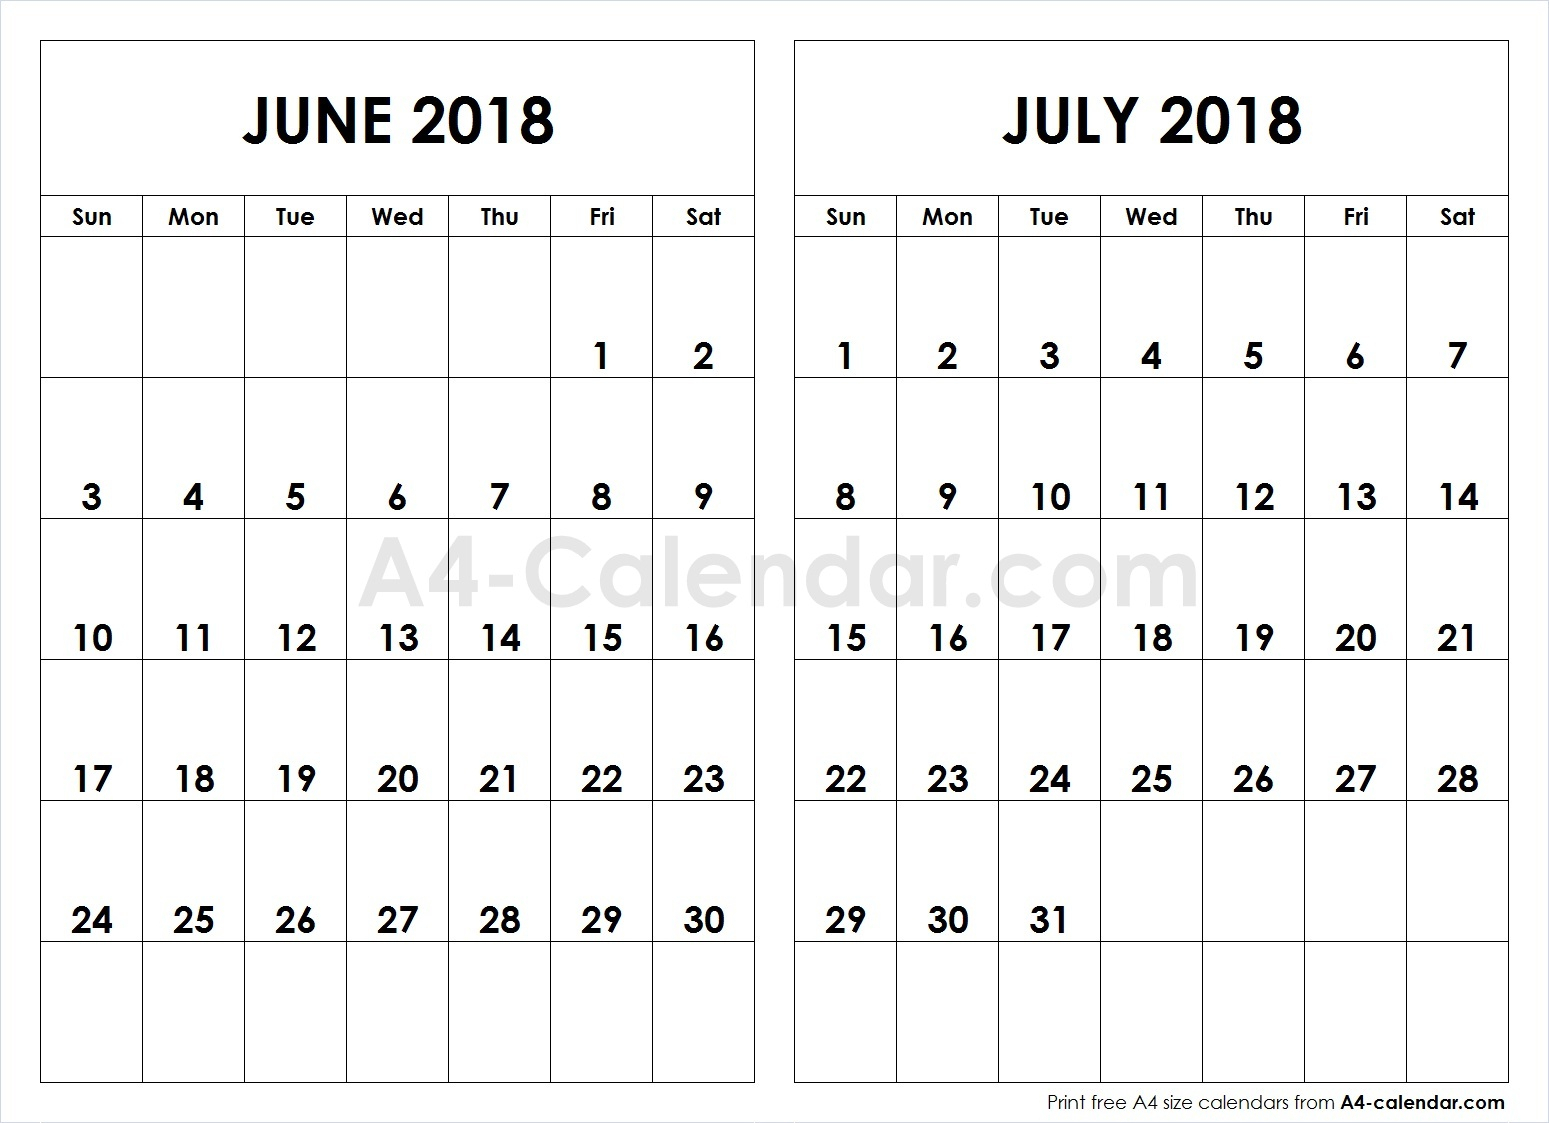 June July 2018 A4 Calendar | 2 Month Calendar Template inside 2 Month Calendar Template June July